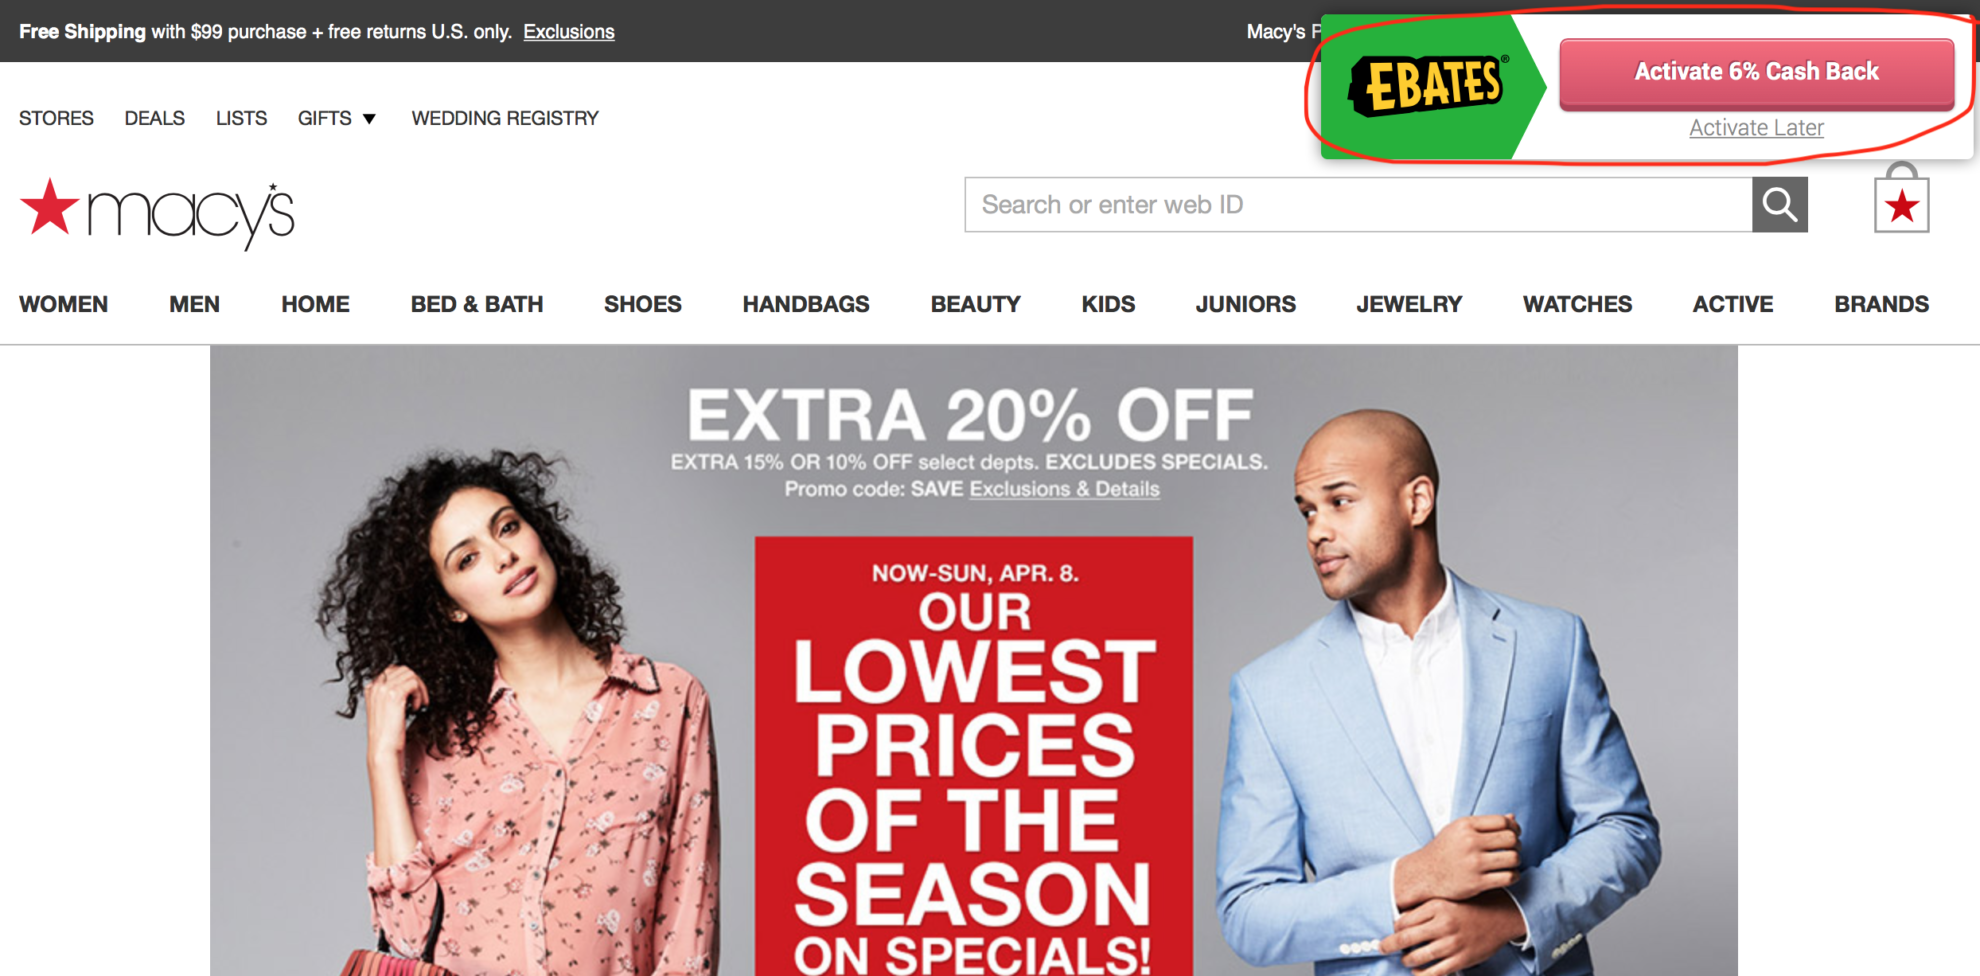 Ebates: Cashback for Shopping. Is Ebates legits? Is Ebates a scam? The truth about ebates and exactly how it works. Cash back for shopping at Amazon, Wal-Mart, eBay, and more.